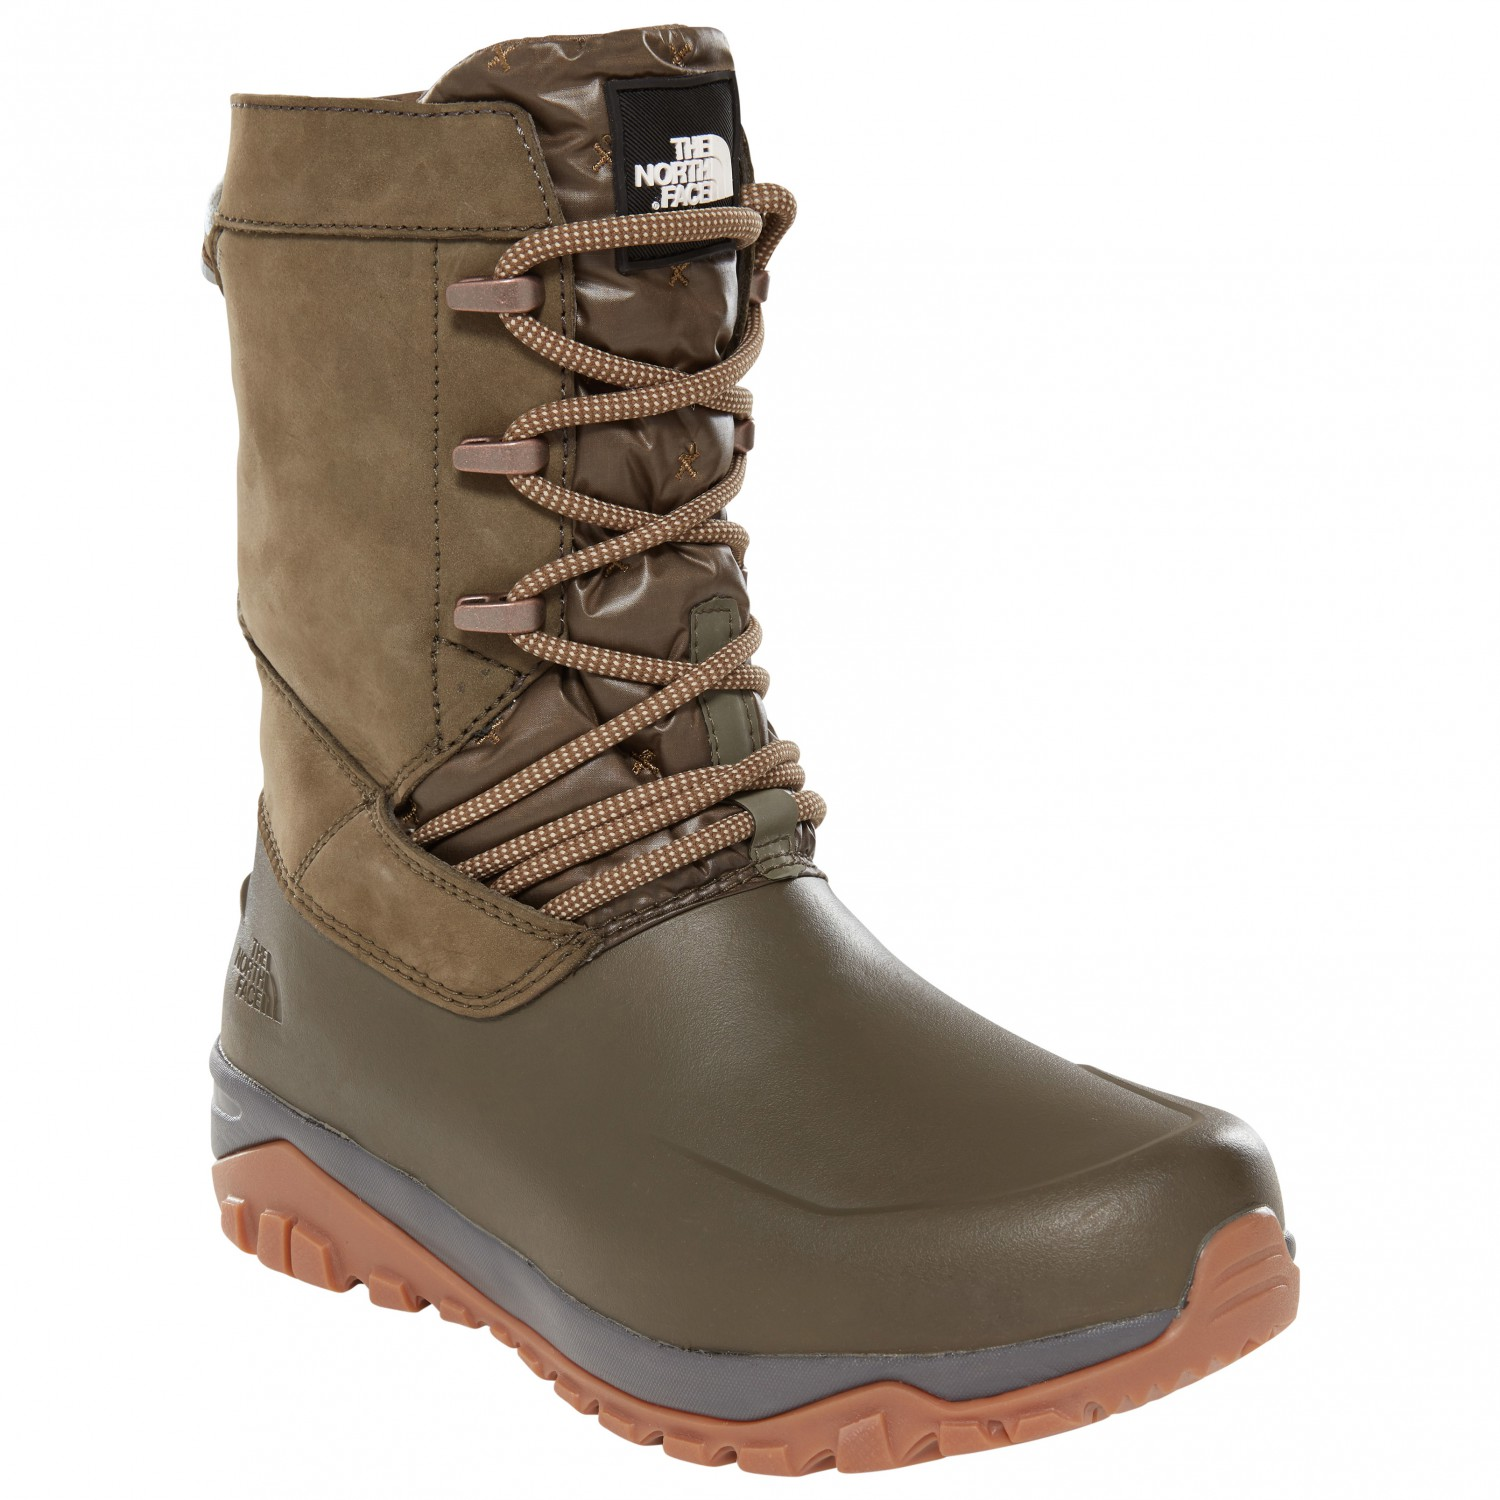 ... The North Face - Women s Yukiona Mid Boot - Winter boots ... 1af2298f2e3f